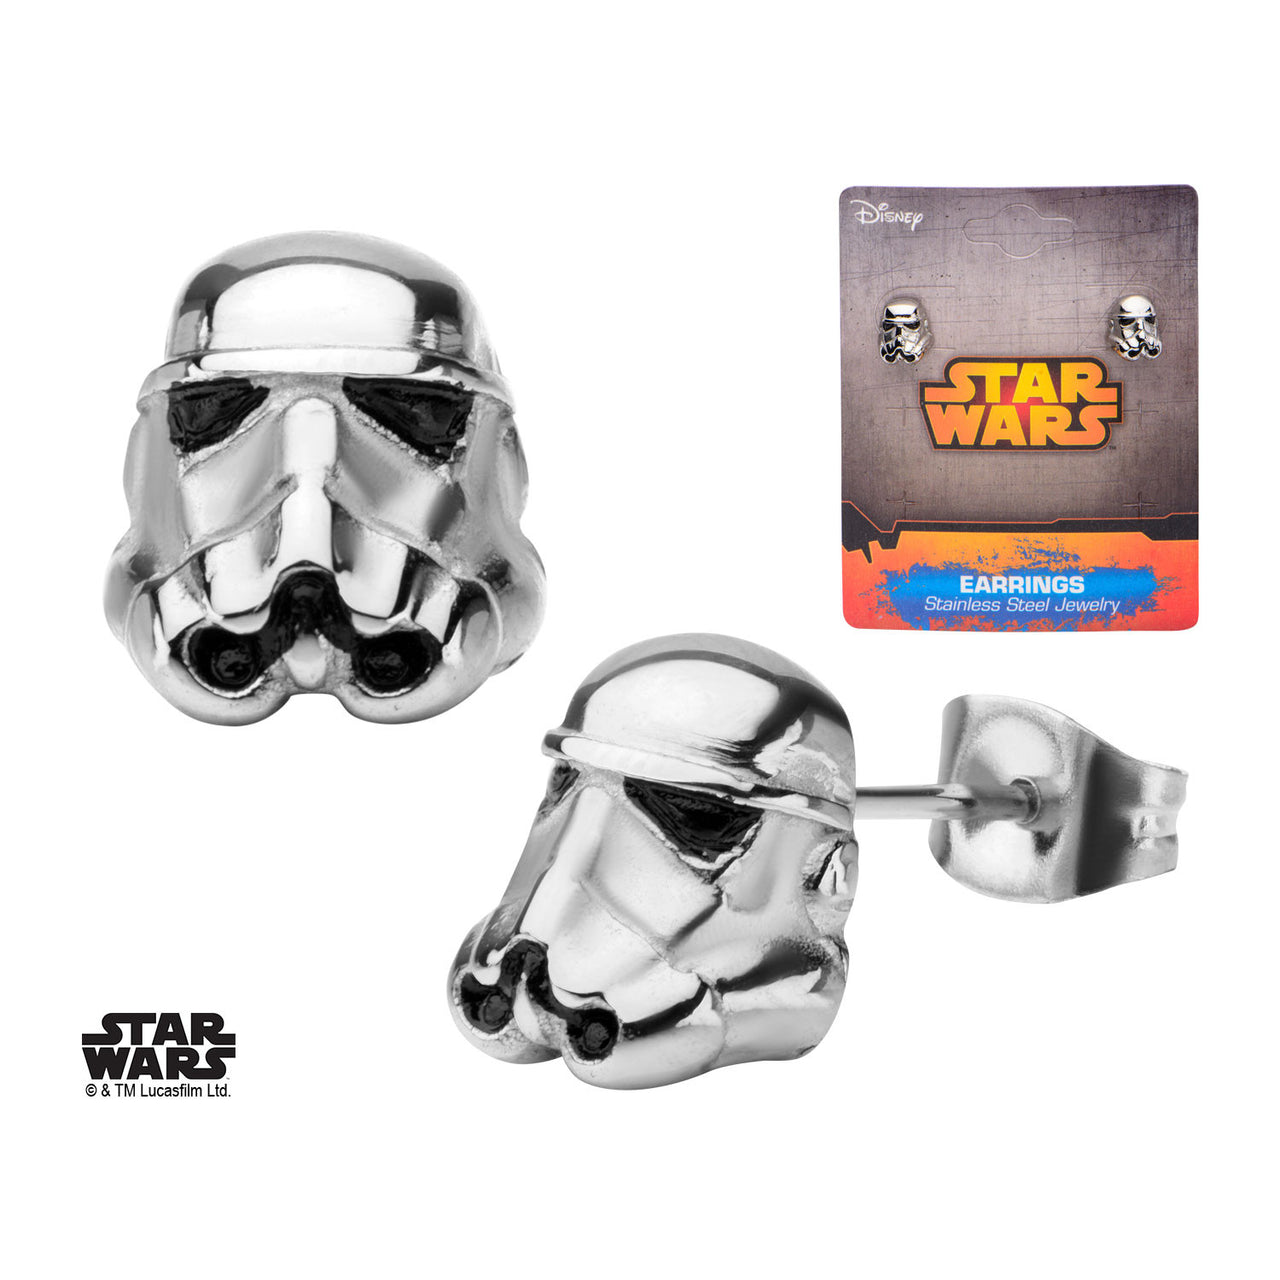 Pair of Stainless Steel Star Wars Storm Trooper Earrings - Highway Thirty One - 1